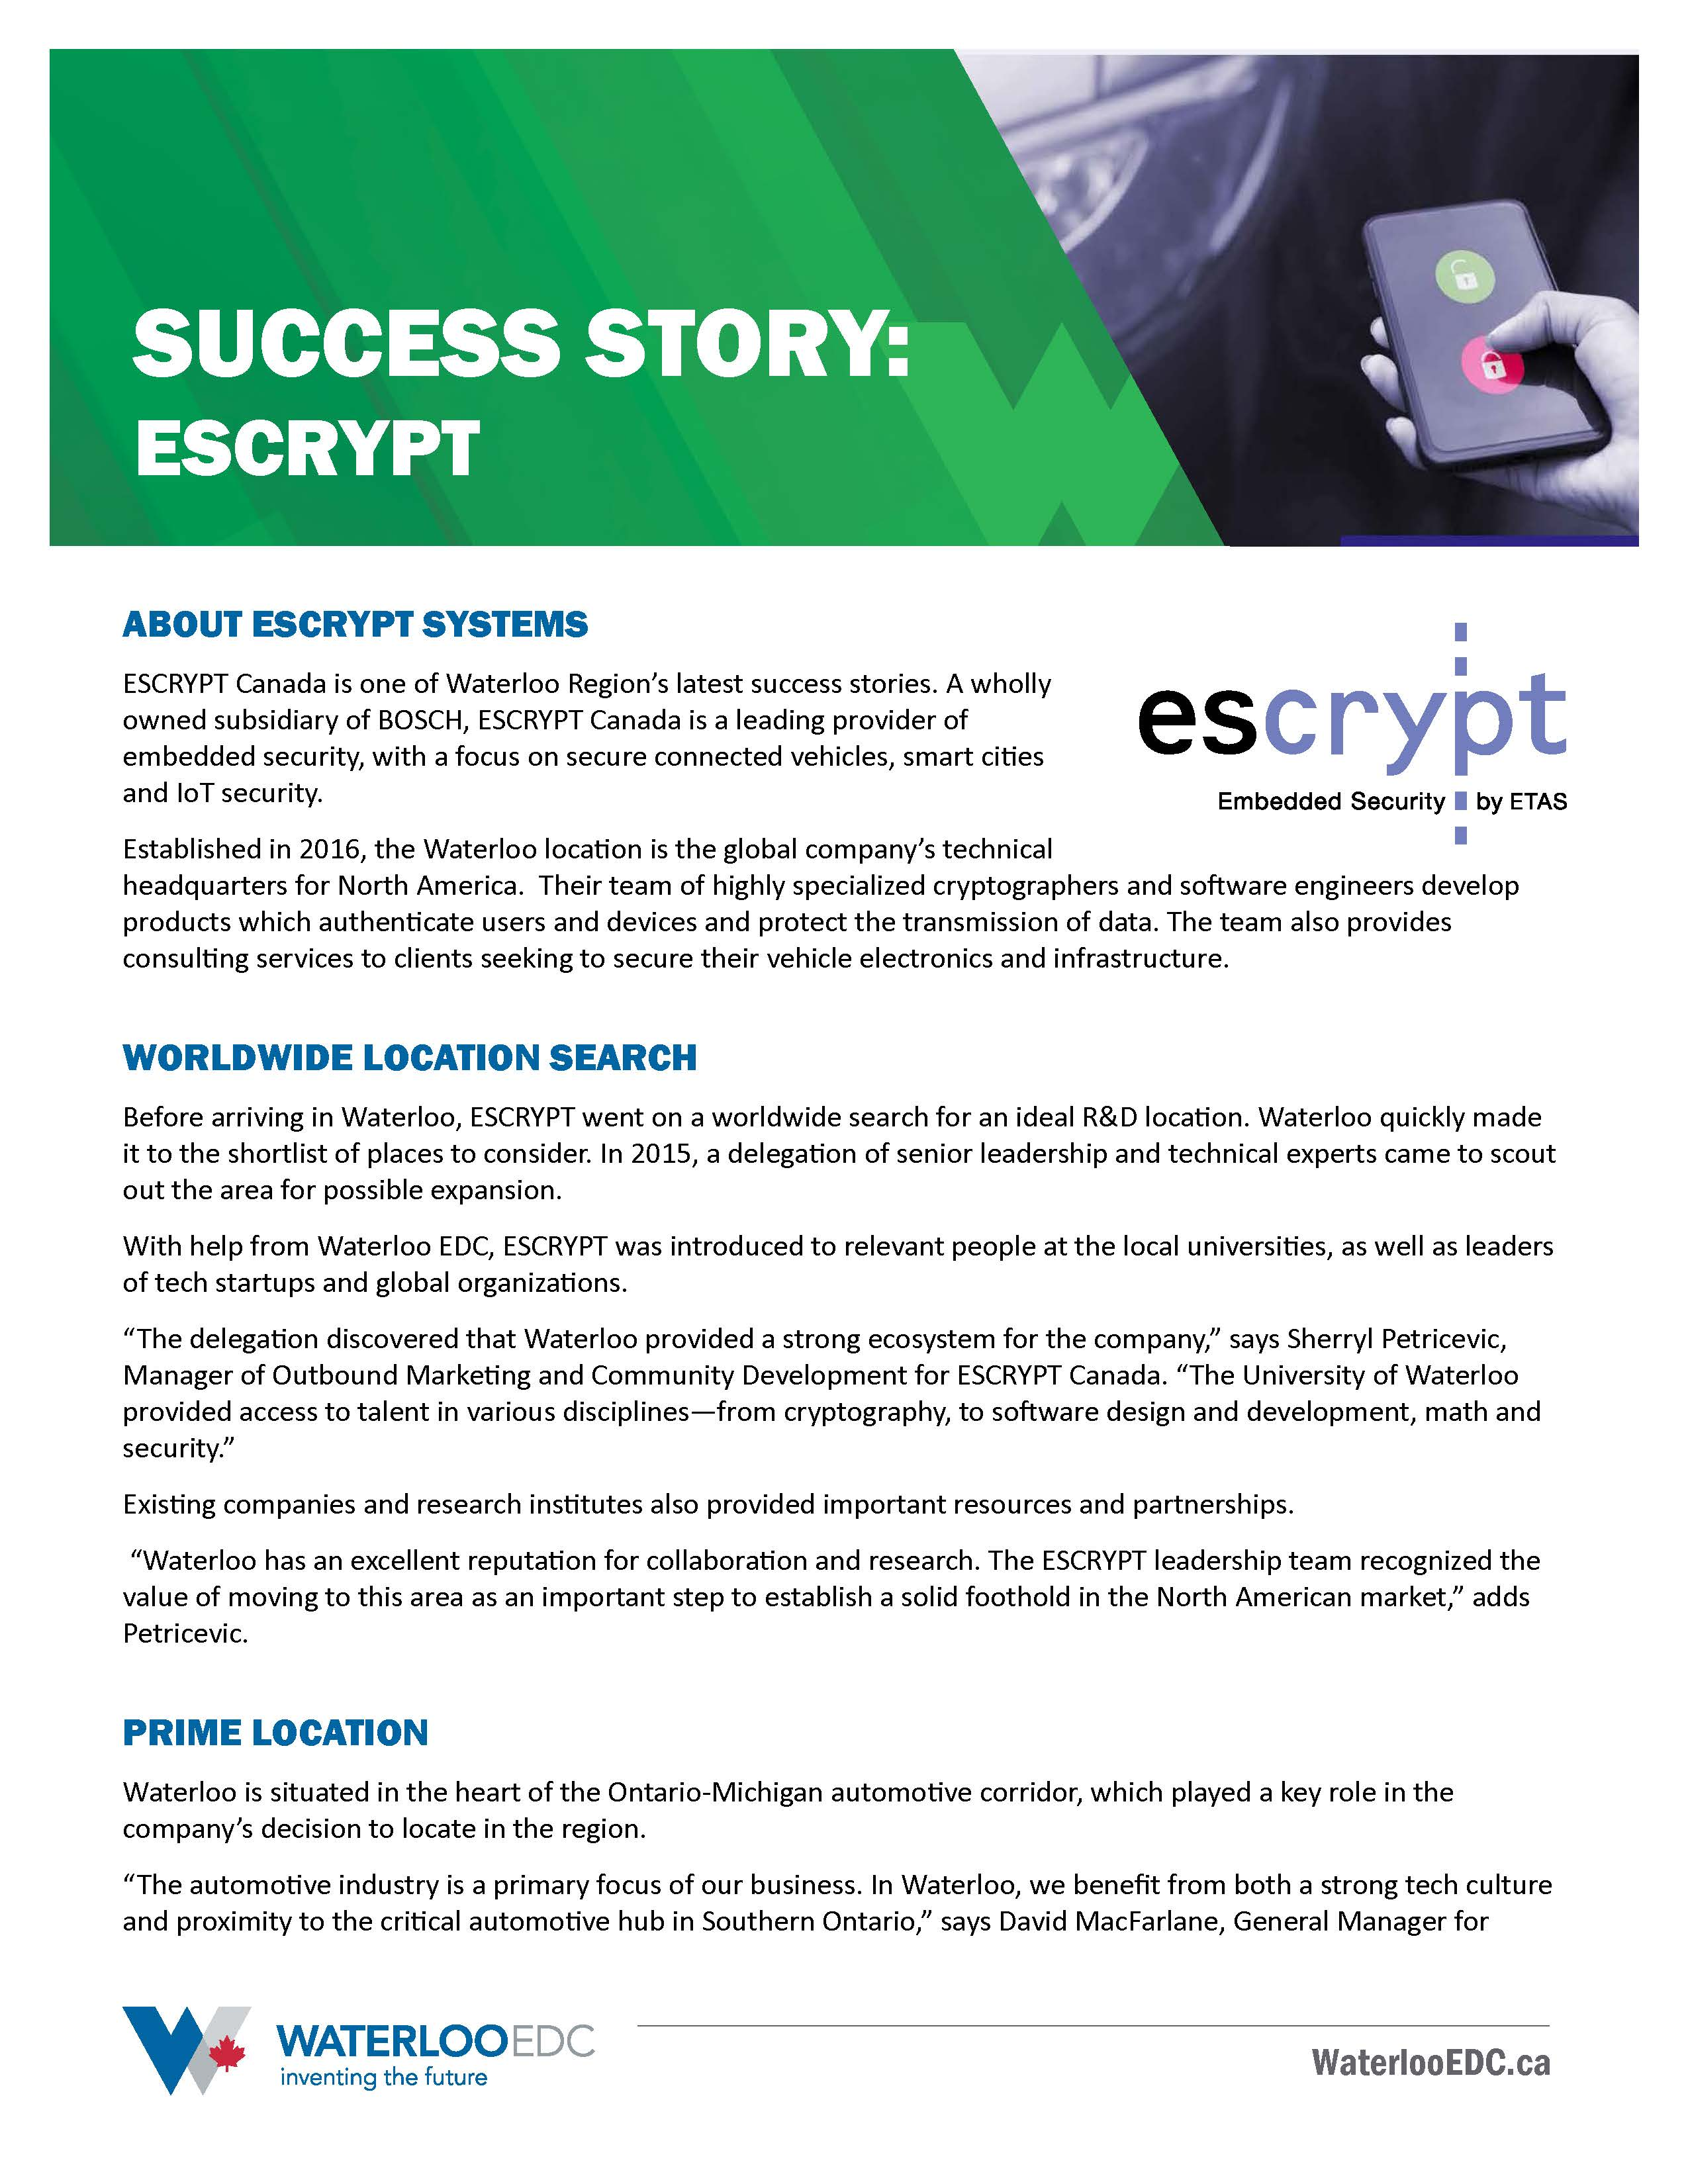 Success Story: ESCRYPT - Download PDF